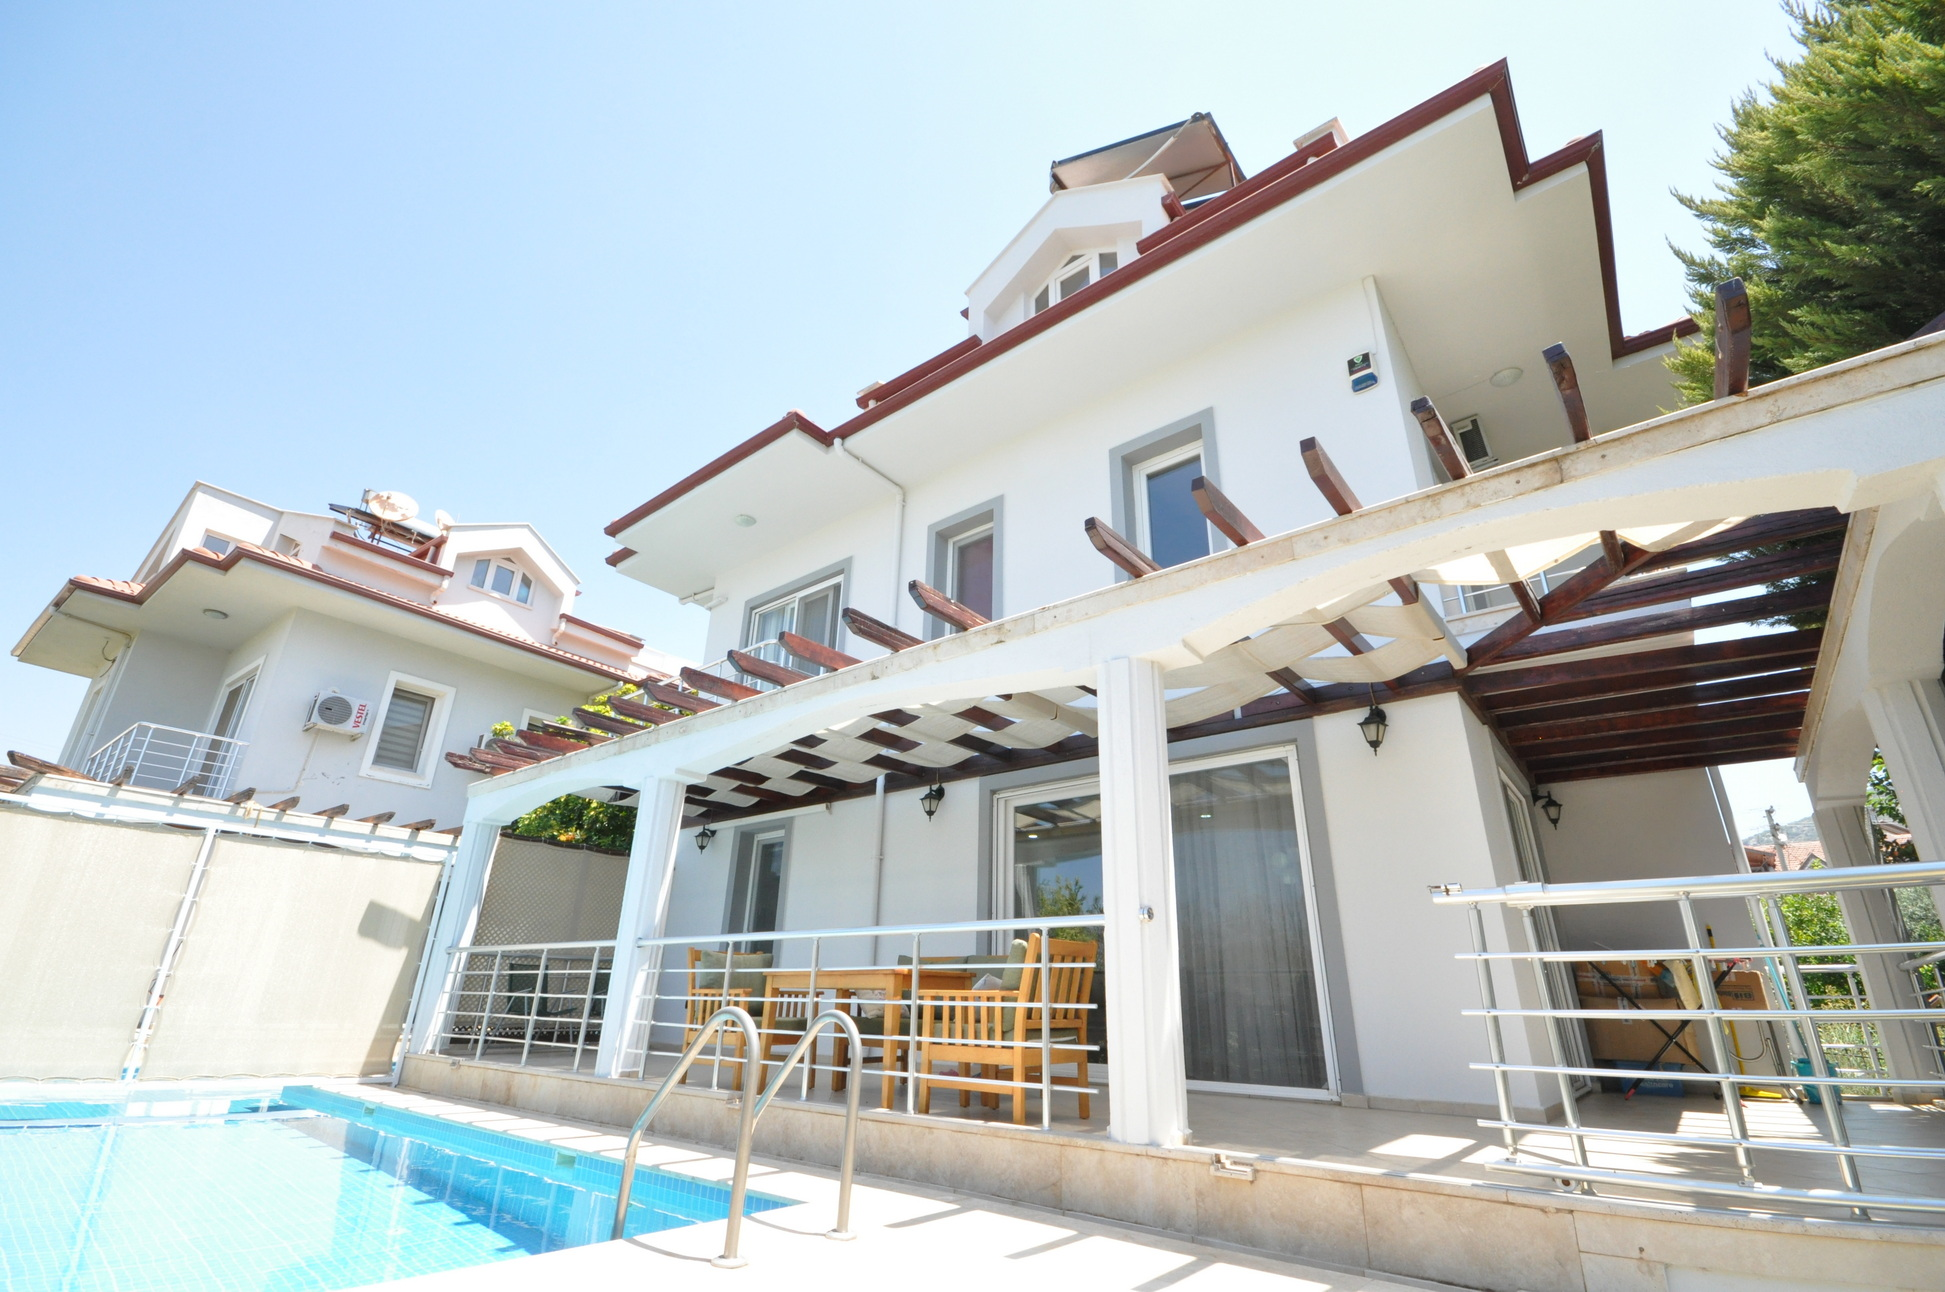 4 Bedroom Detached Villa with Shared Pool for Sale in Fethiye